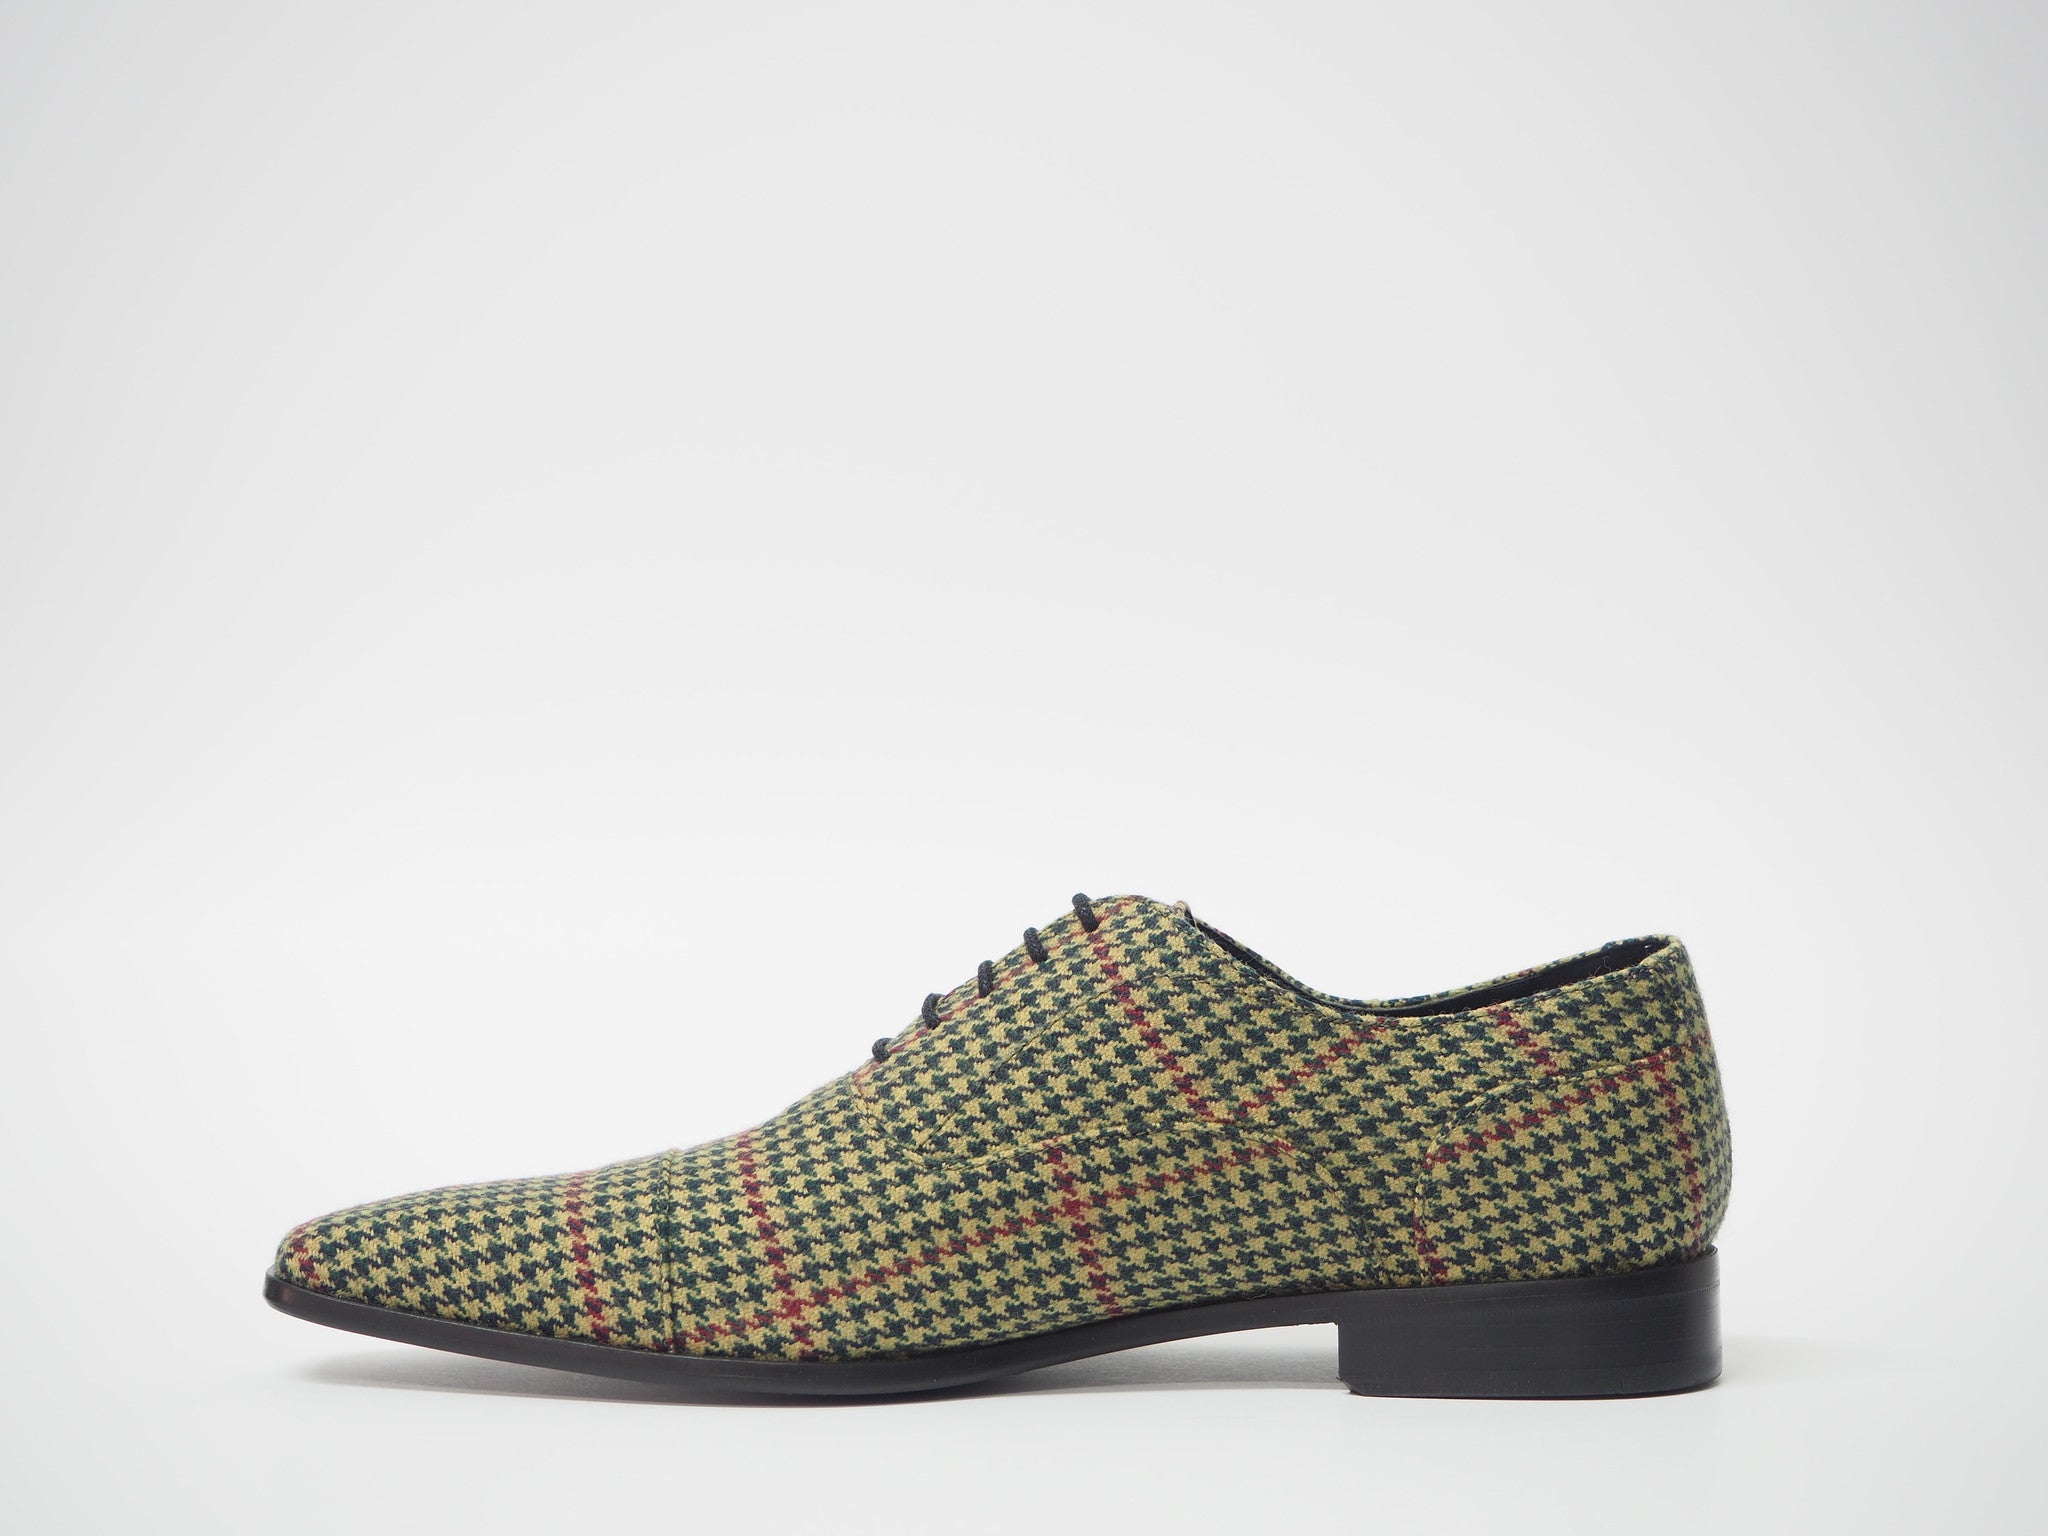 Size 45 - Green & Red Pied de Poule Oxford + Belt